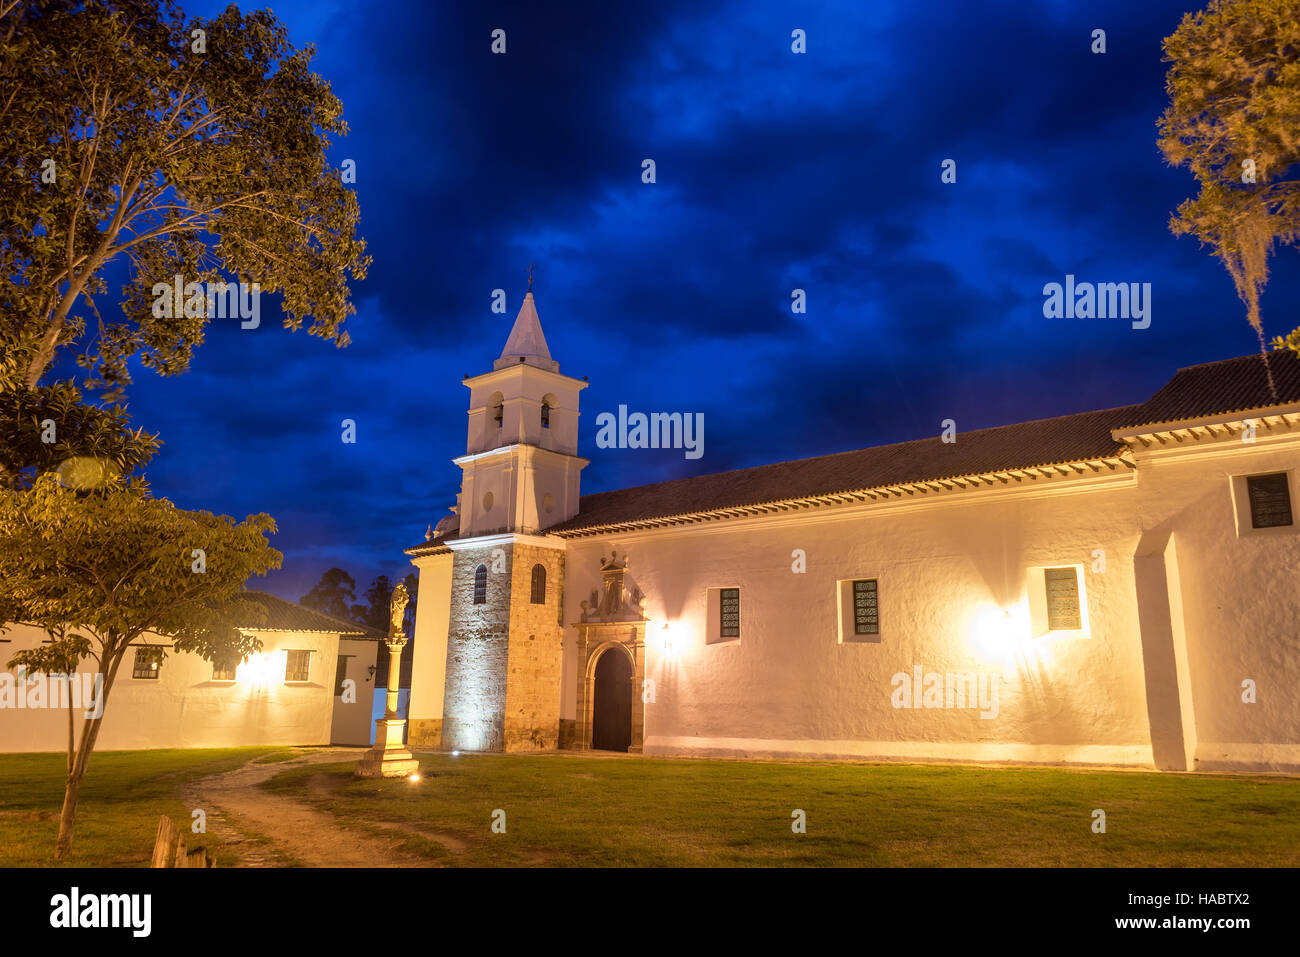 Long exposure of San Francisco convent taken during the blue hour in Villa de Leyva, Colombia - Stock Image